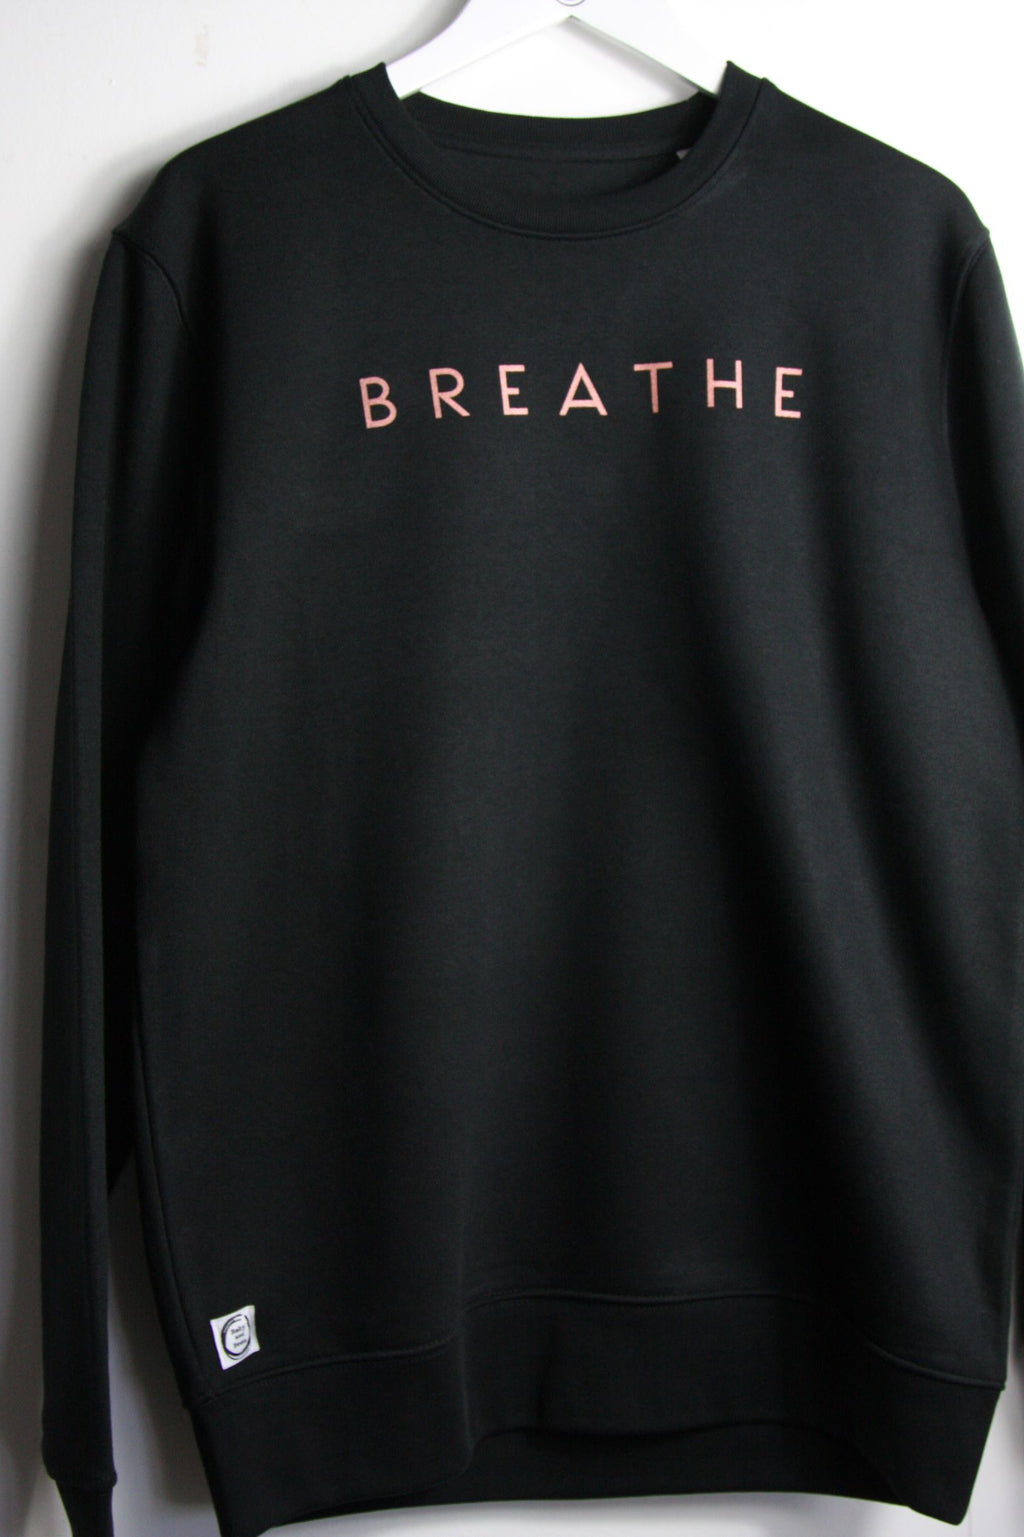 Classic black sweatshirt with BREATHE design printed in copper ink